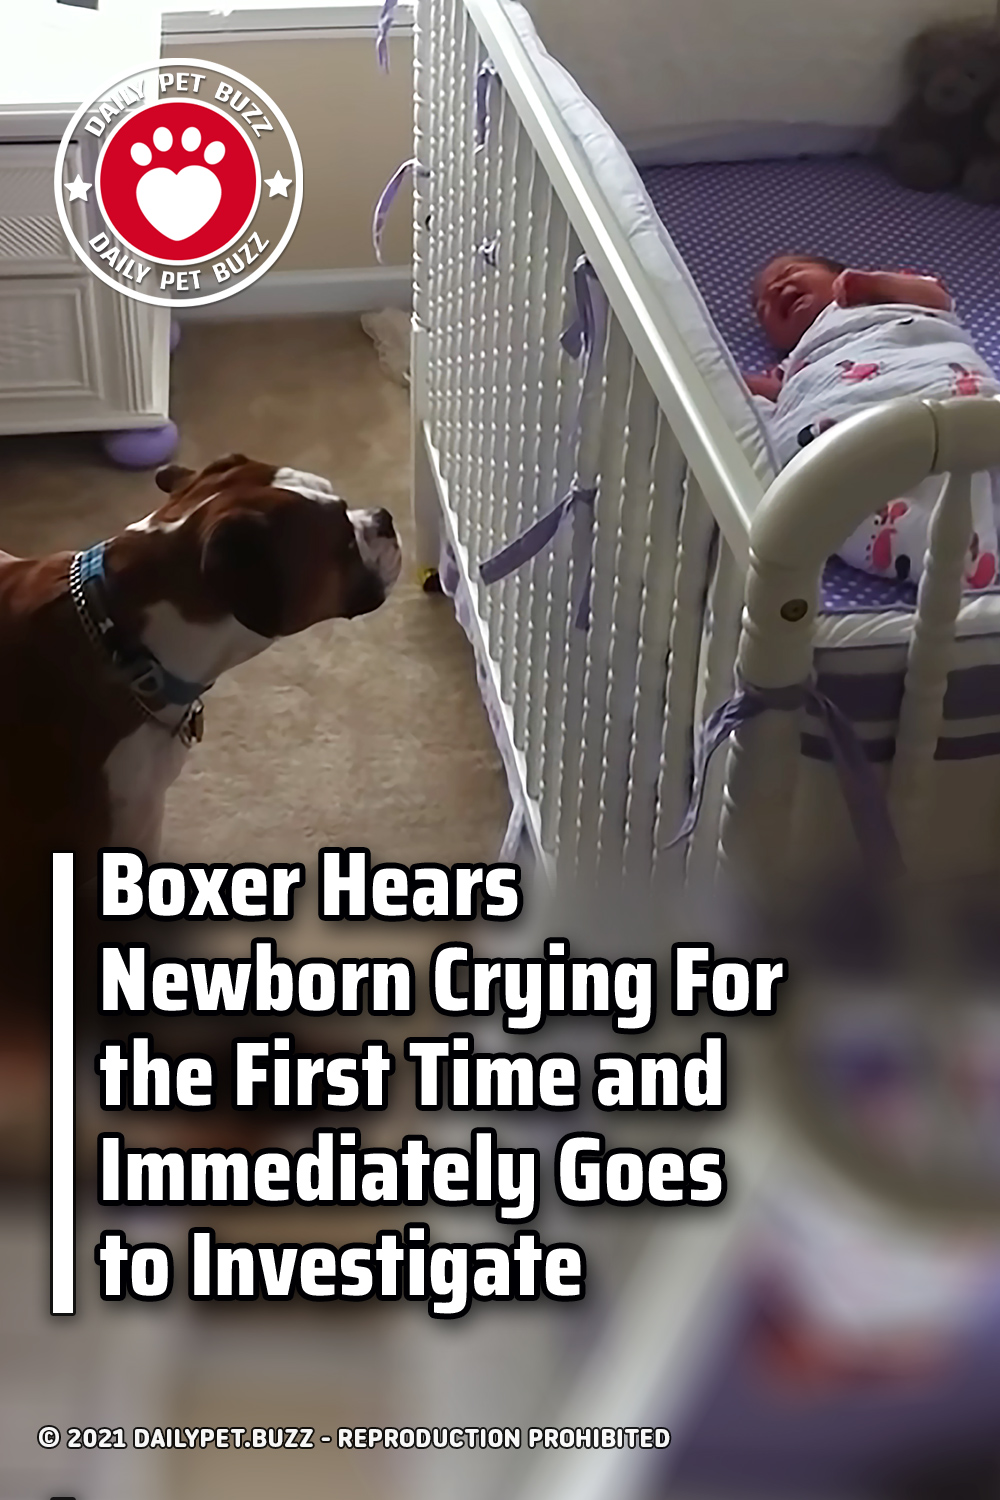 Boxer Hears Newborn Crying For the First Time and Immediately Goes to Investigate